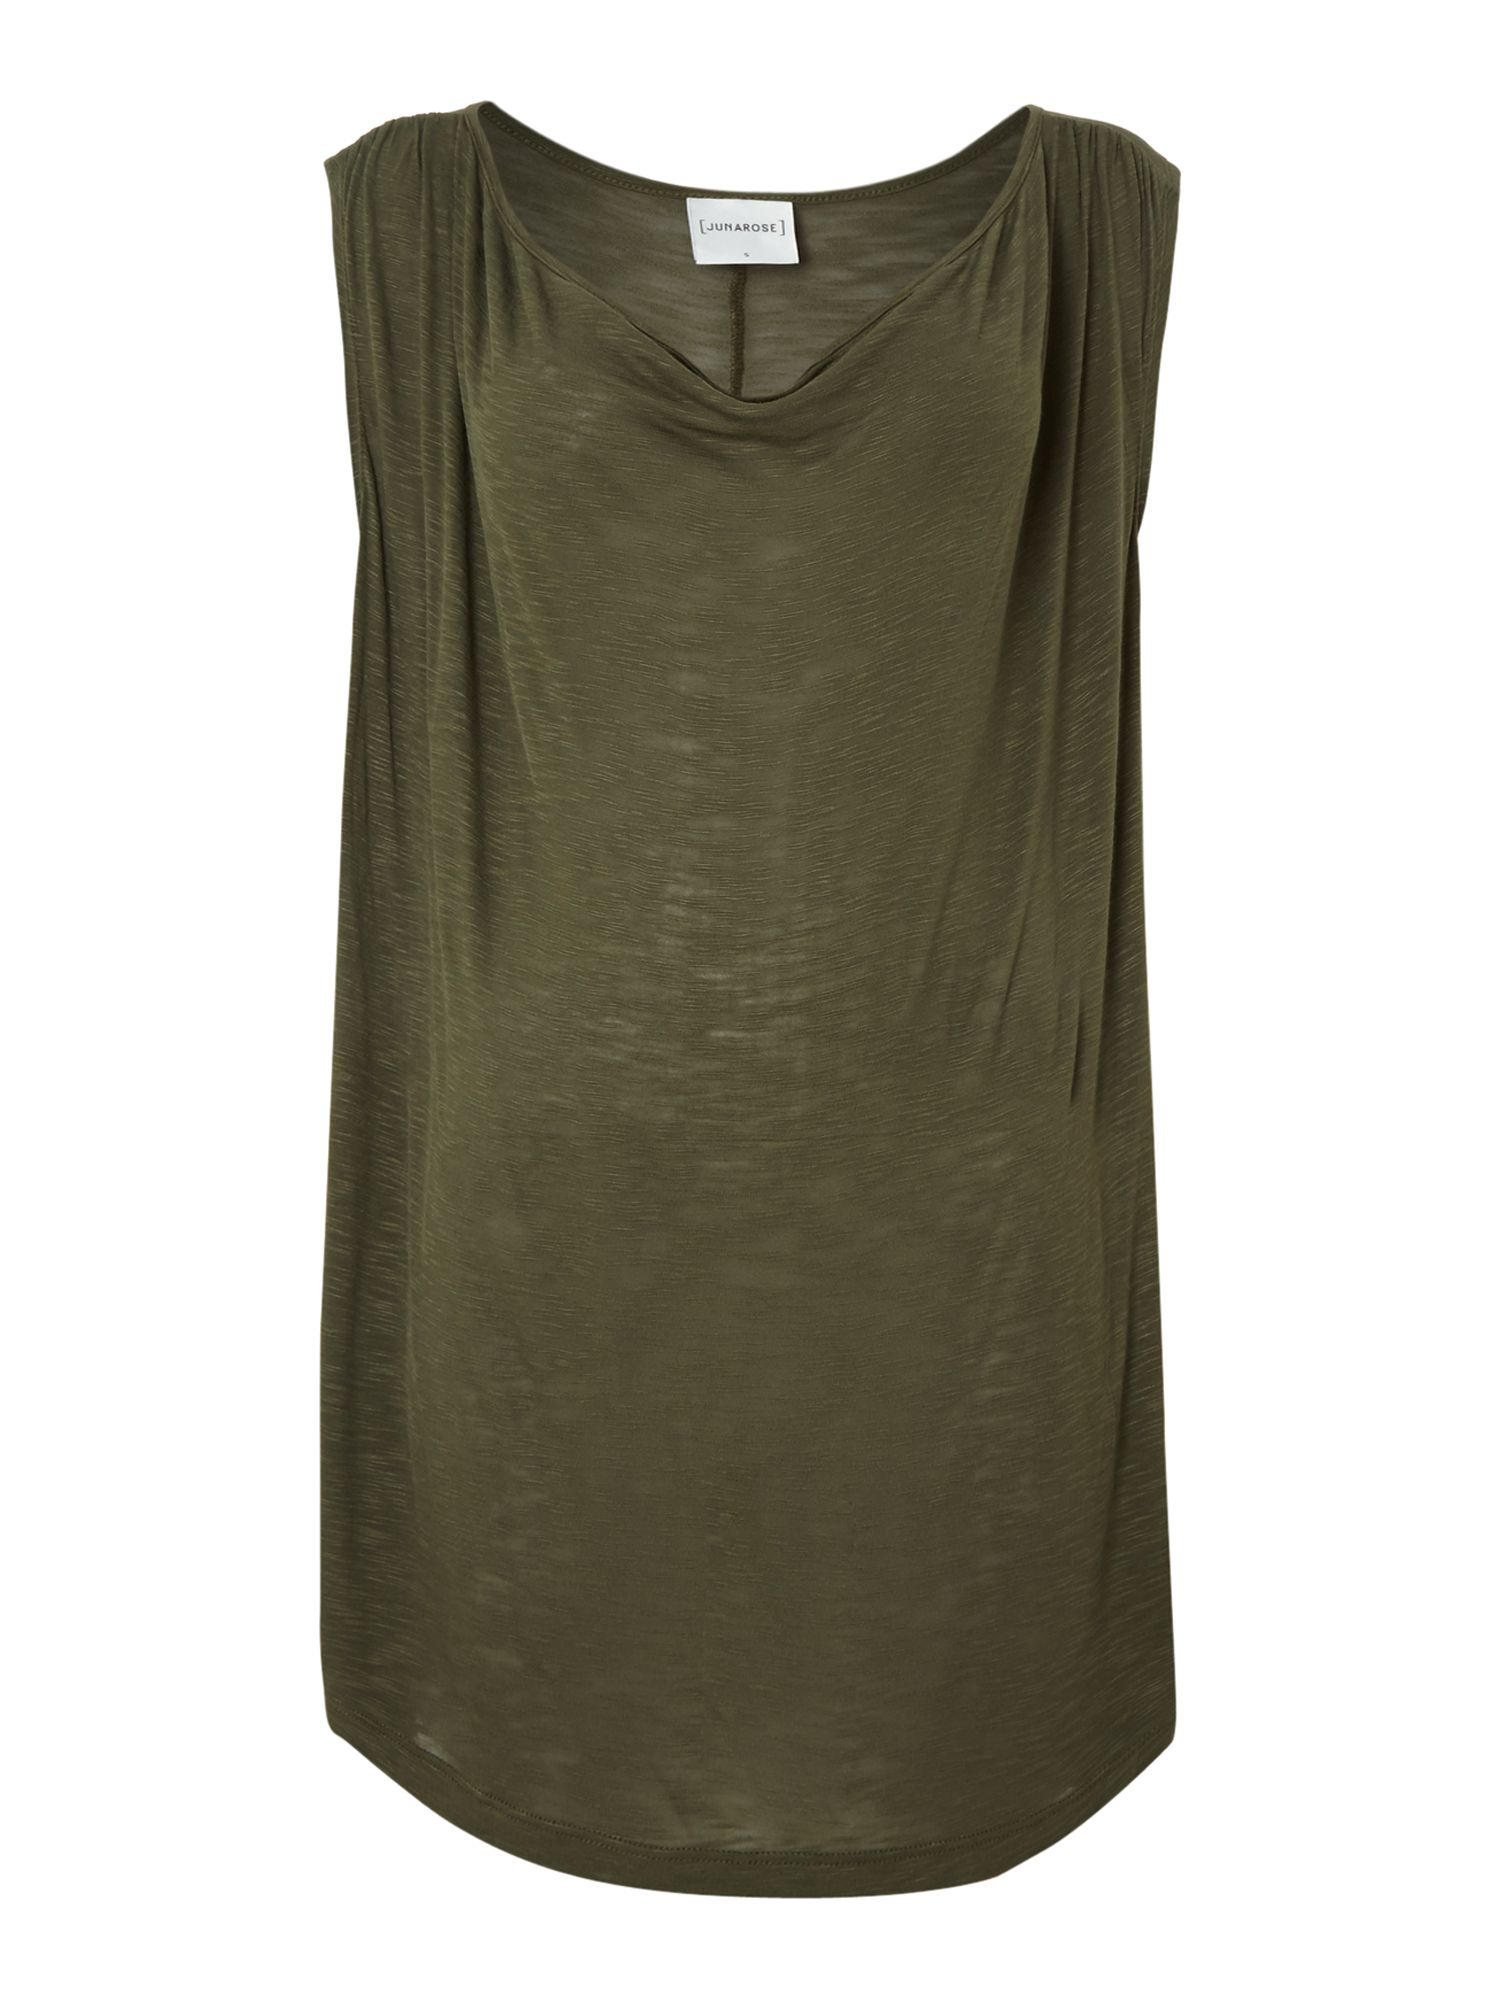 Sleeveless cowl neck top